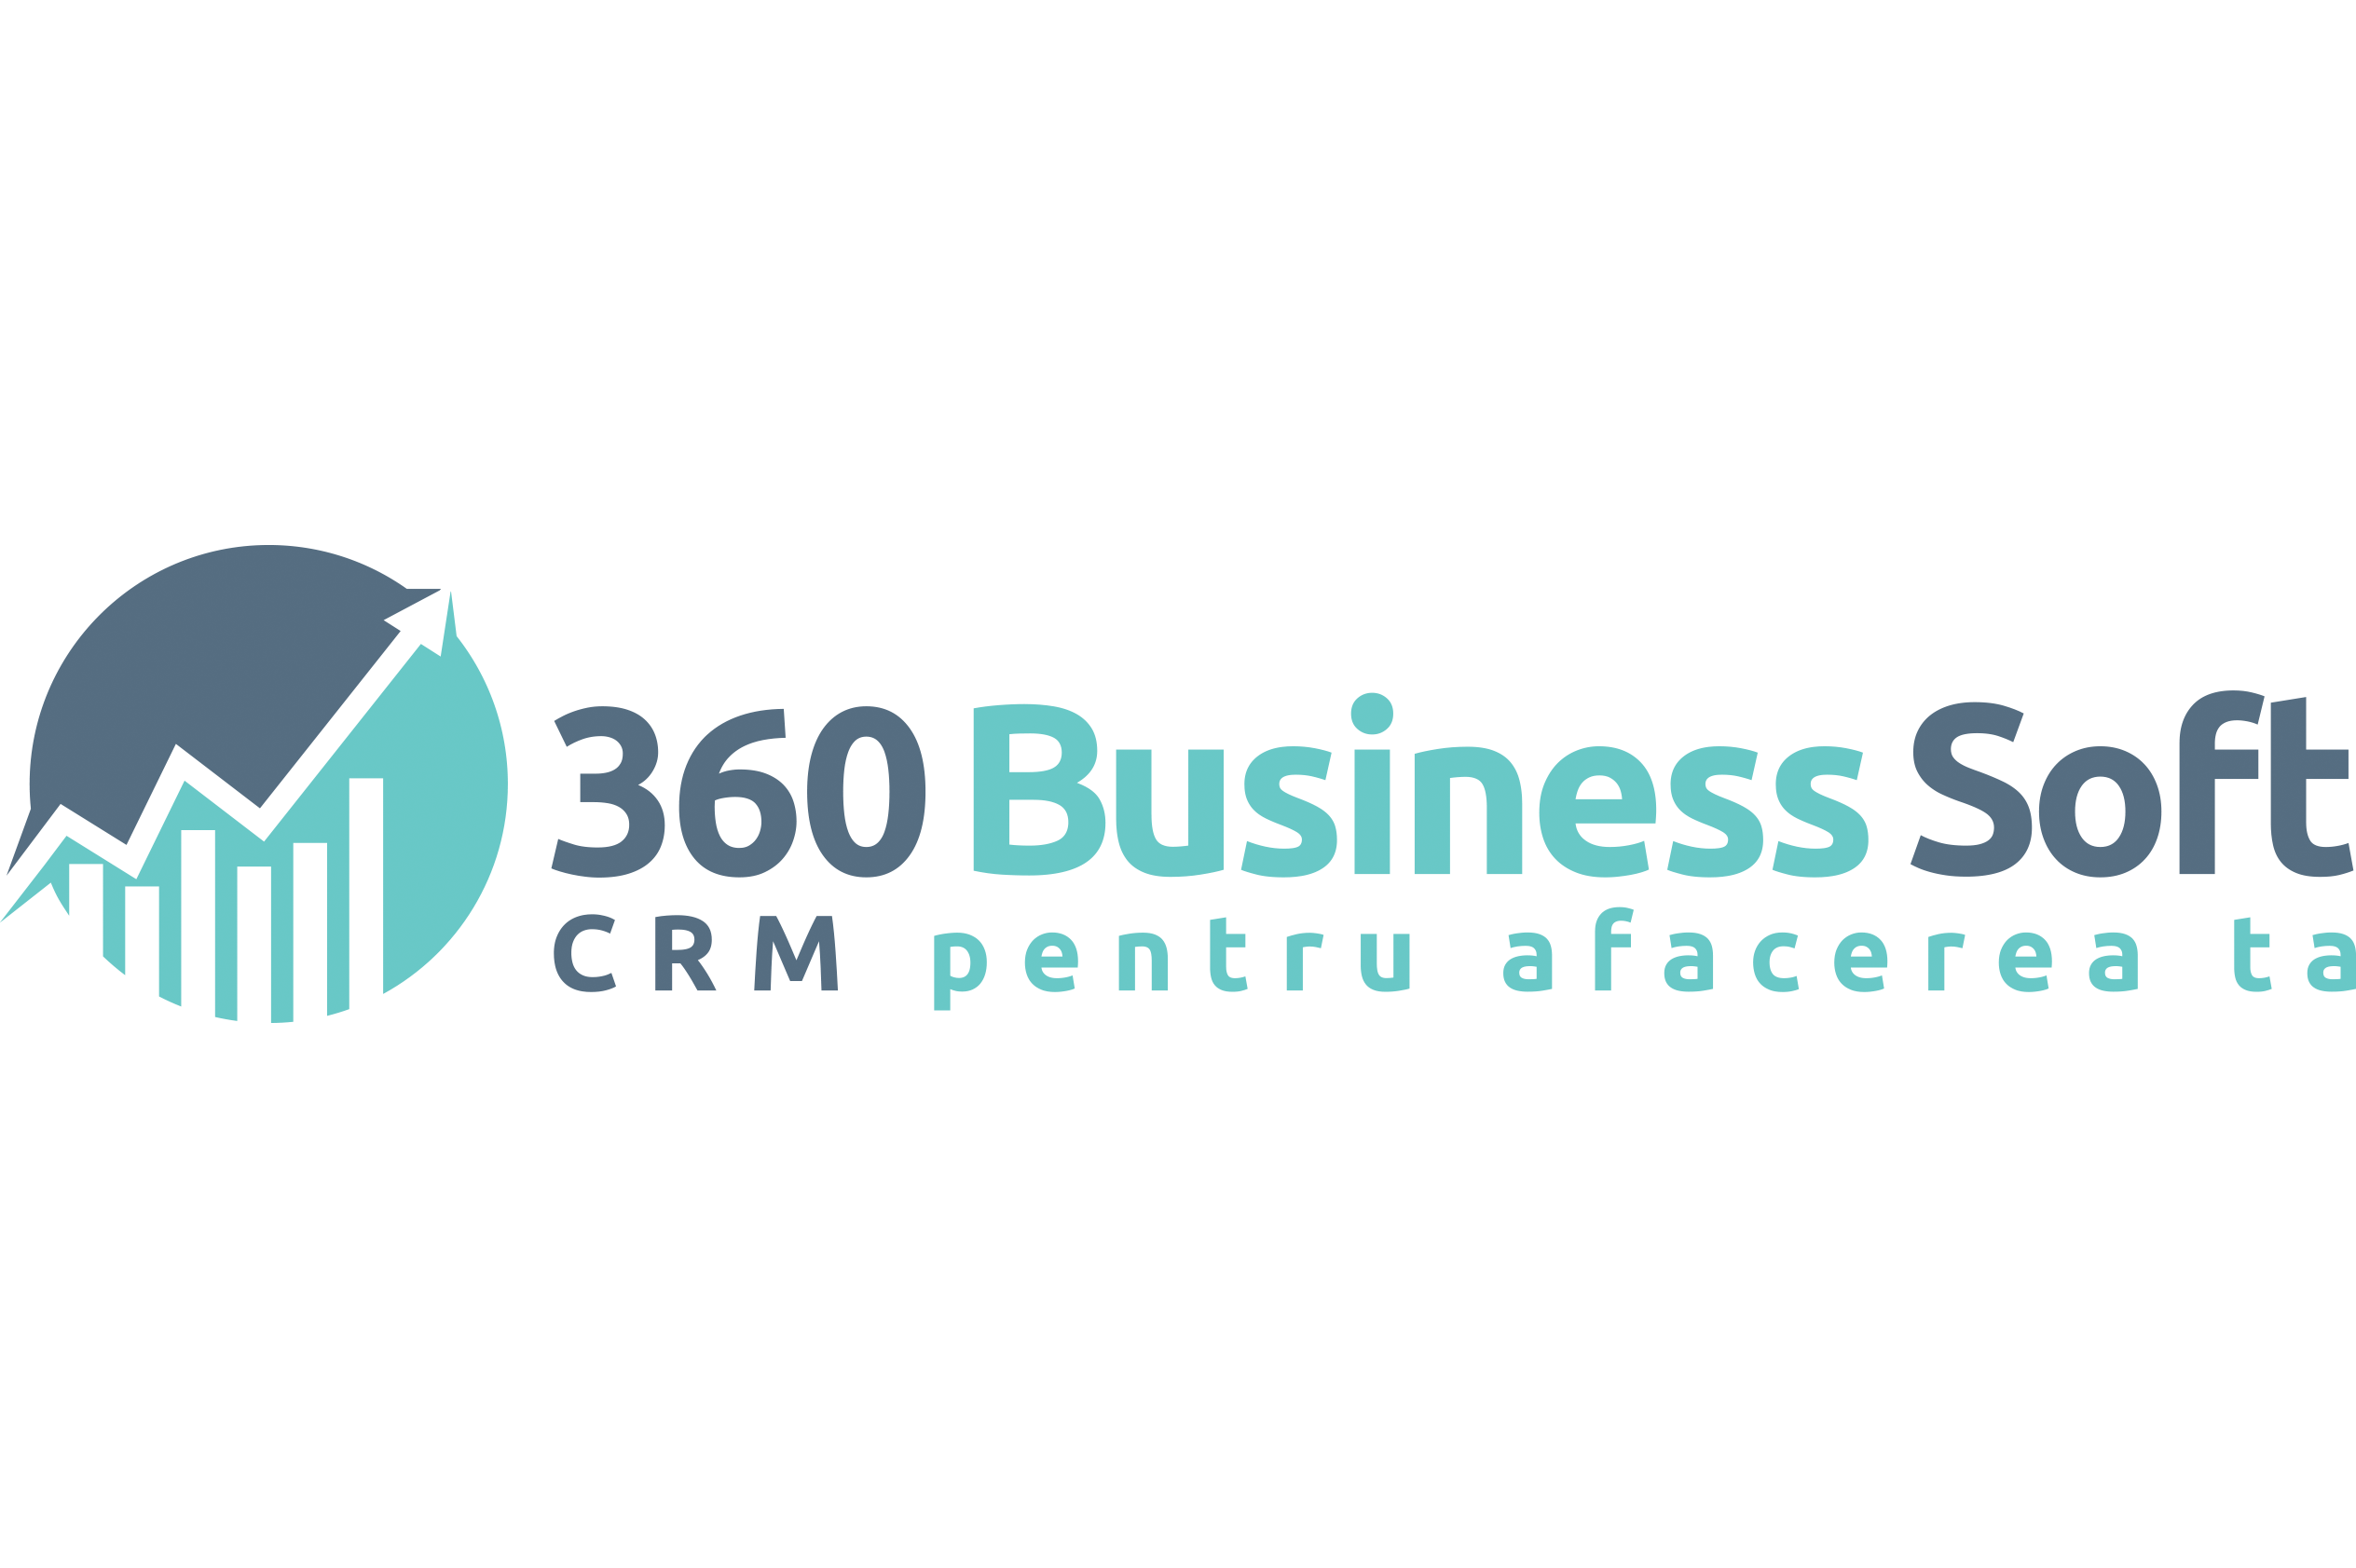 360 business soft